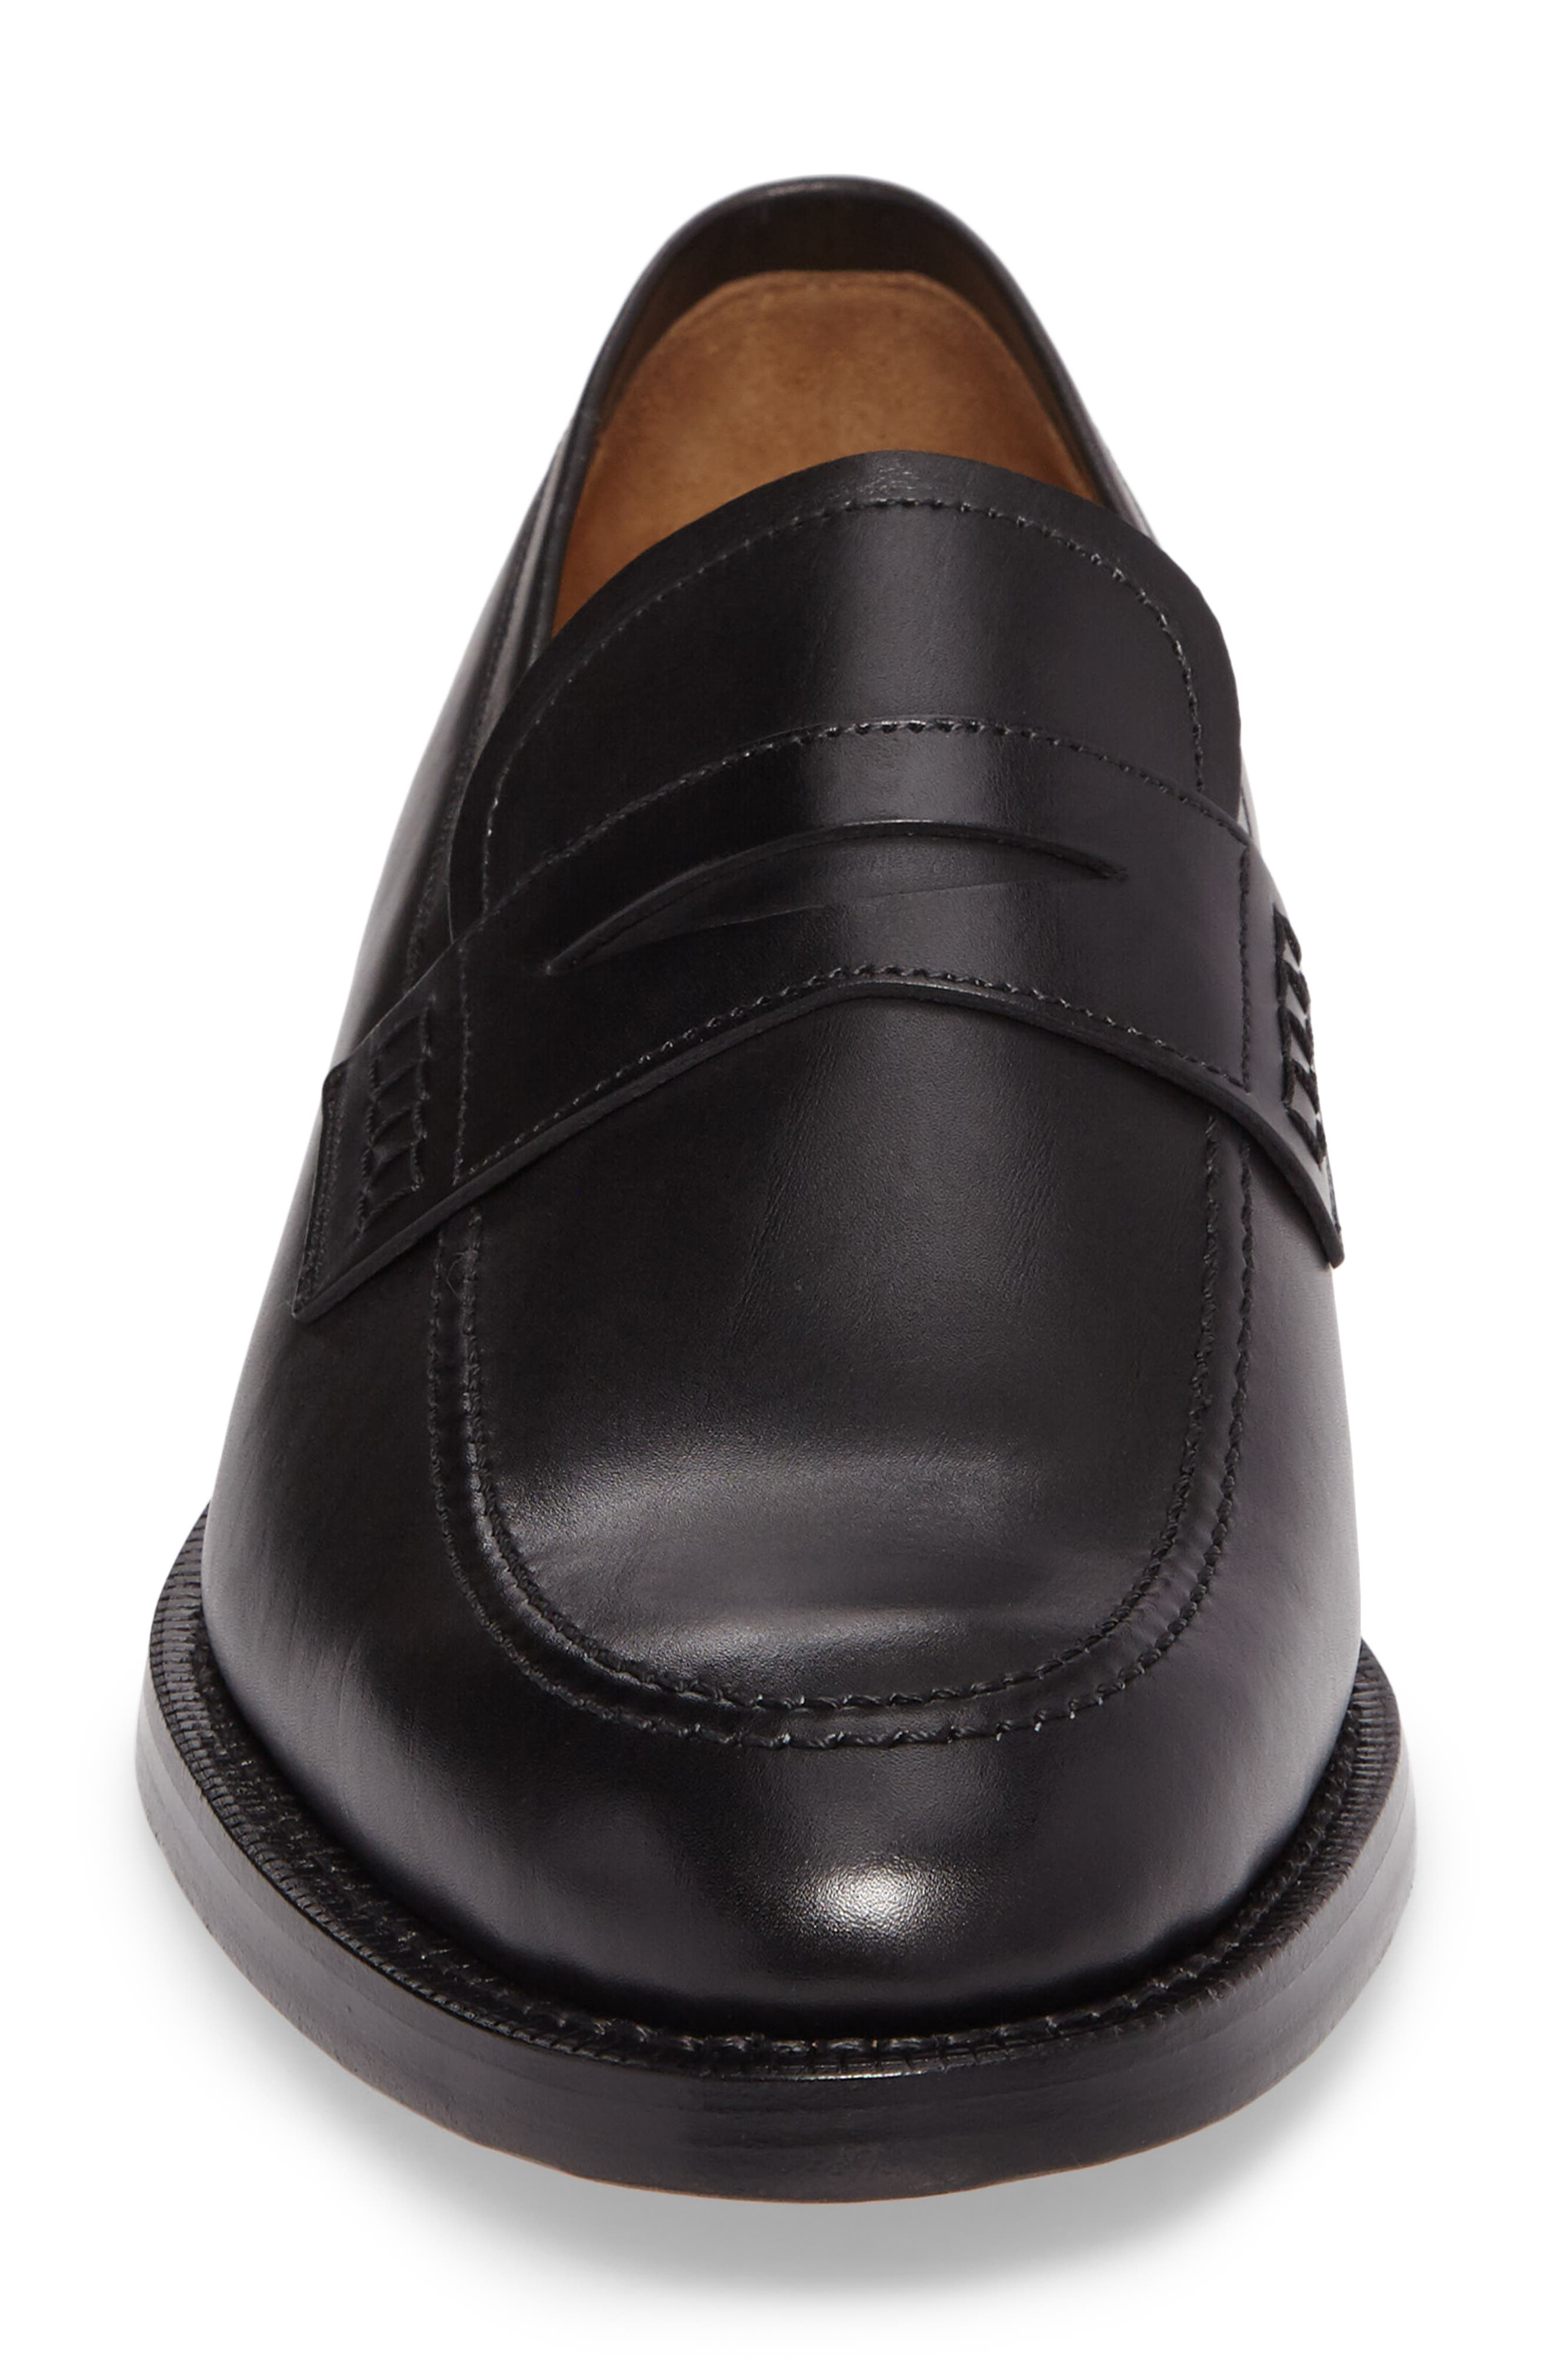 Archie Penny Loafer,                             Alternate thumbnail 4, color,                             001